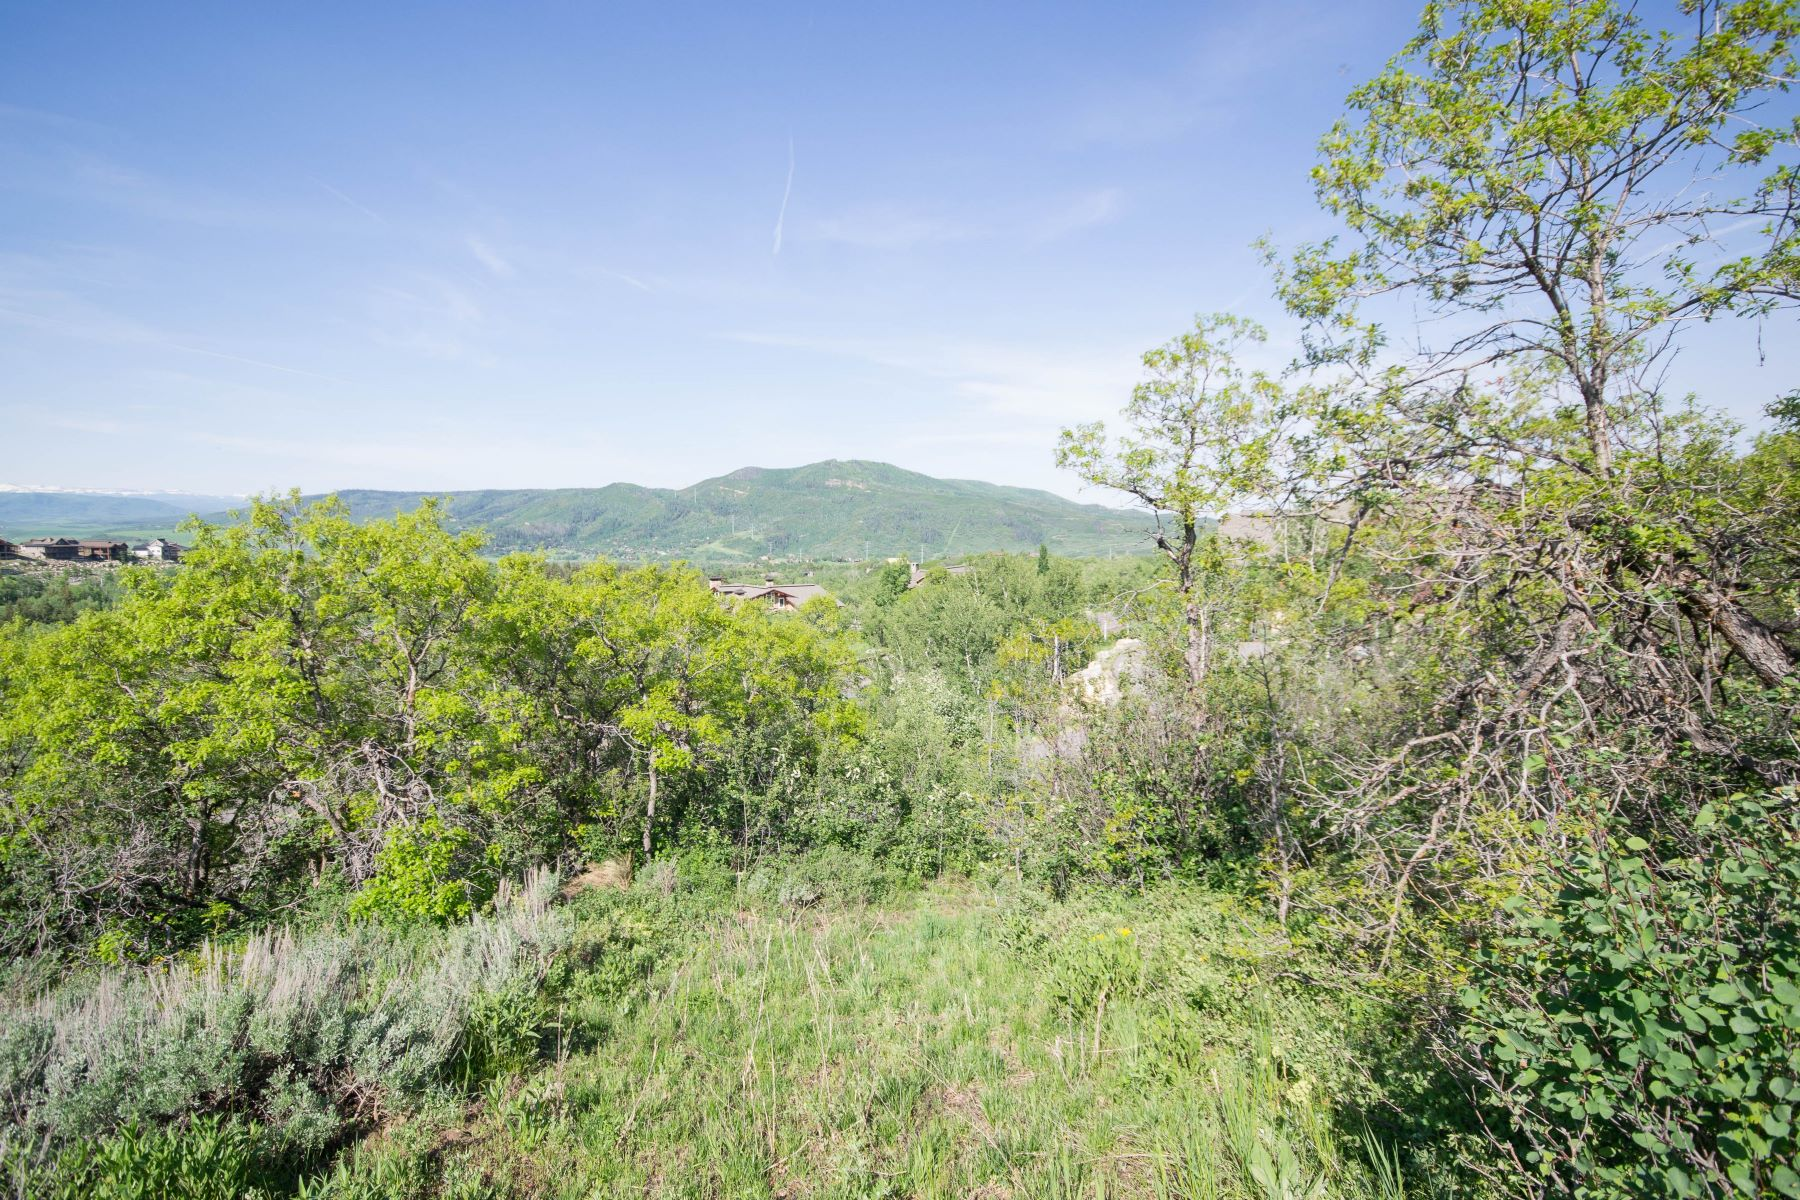 Additional photo for property listing at Endless Steamboat Valley Views 662 Steamboat Blvd 斯廷博特斯普林斯, 科罗拉多州 80487 美国